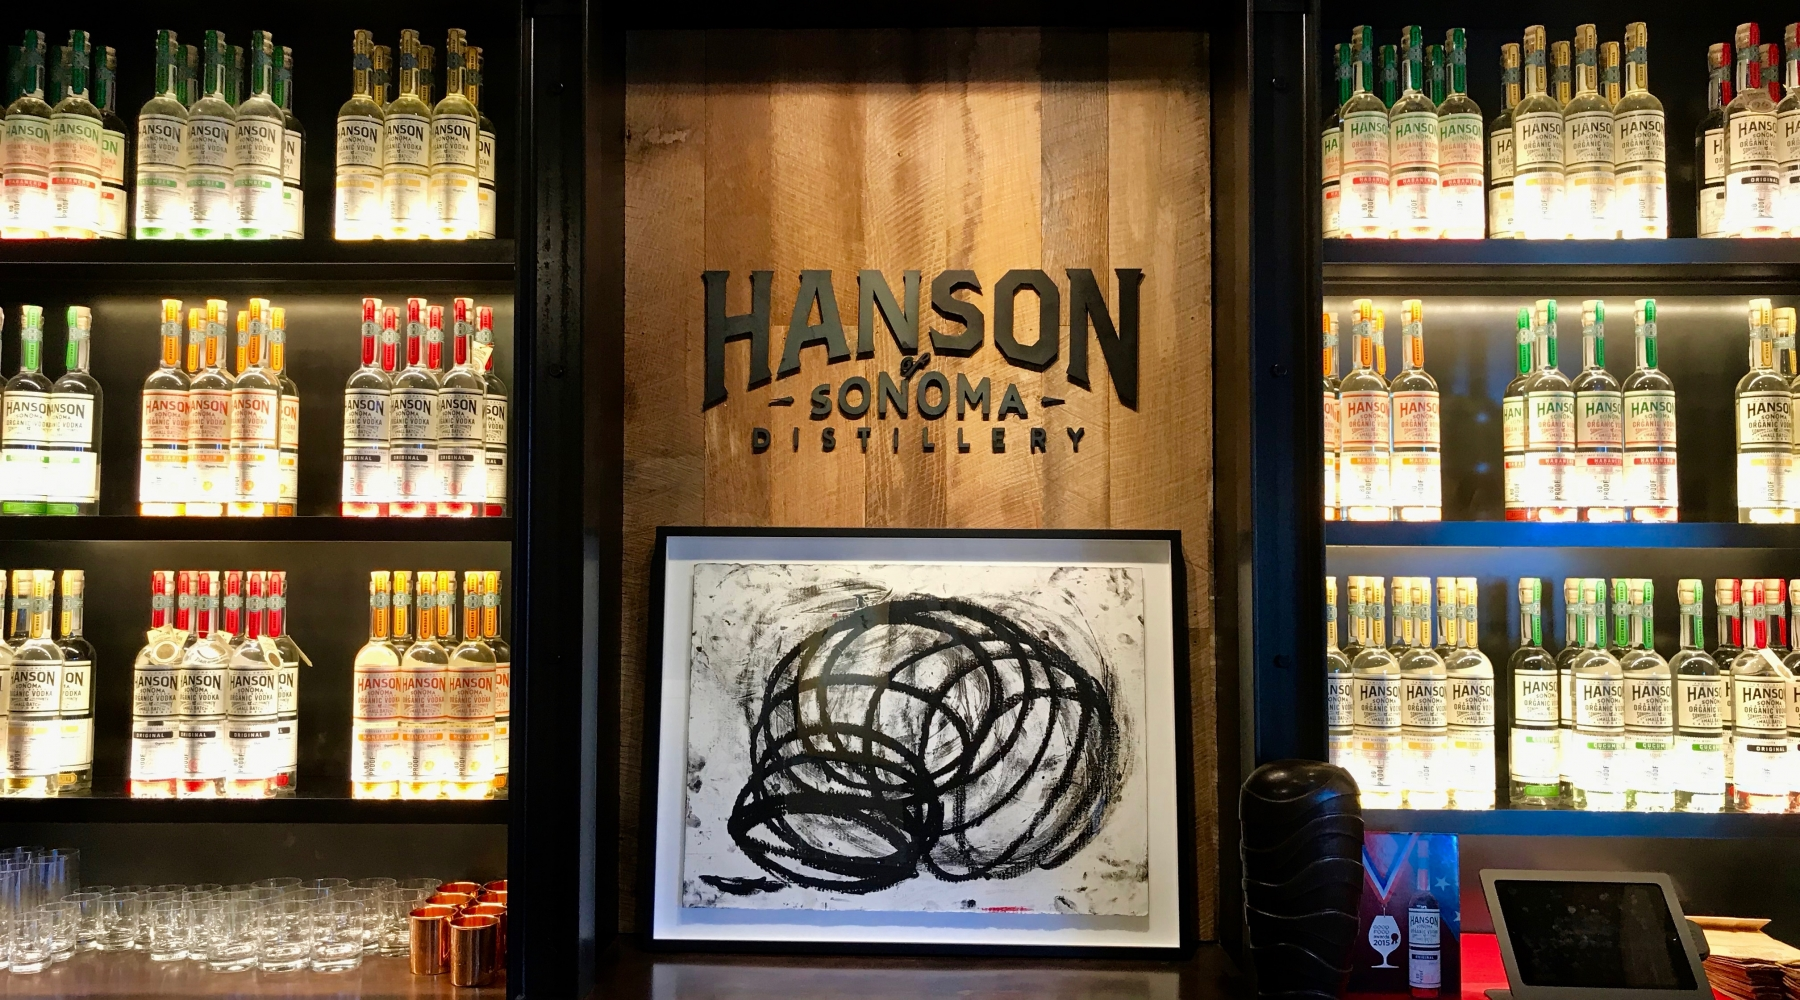 Hanson of Sonoma opens a Tasting Room in Hanson Gallery Sausalito!  Friday, Saturday and Sunday